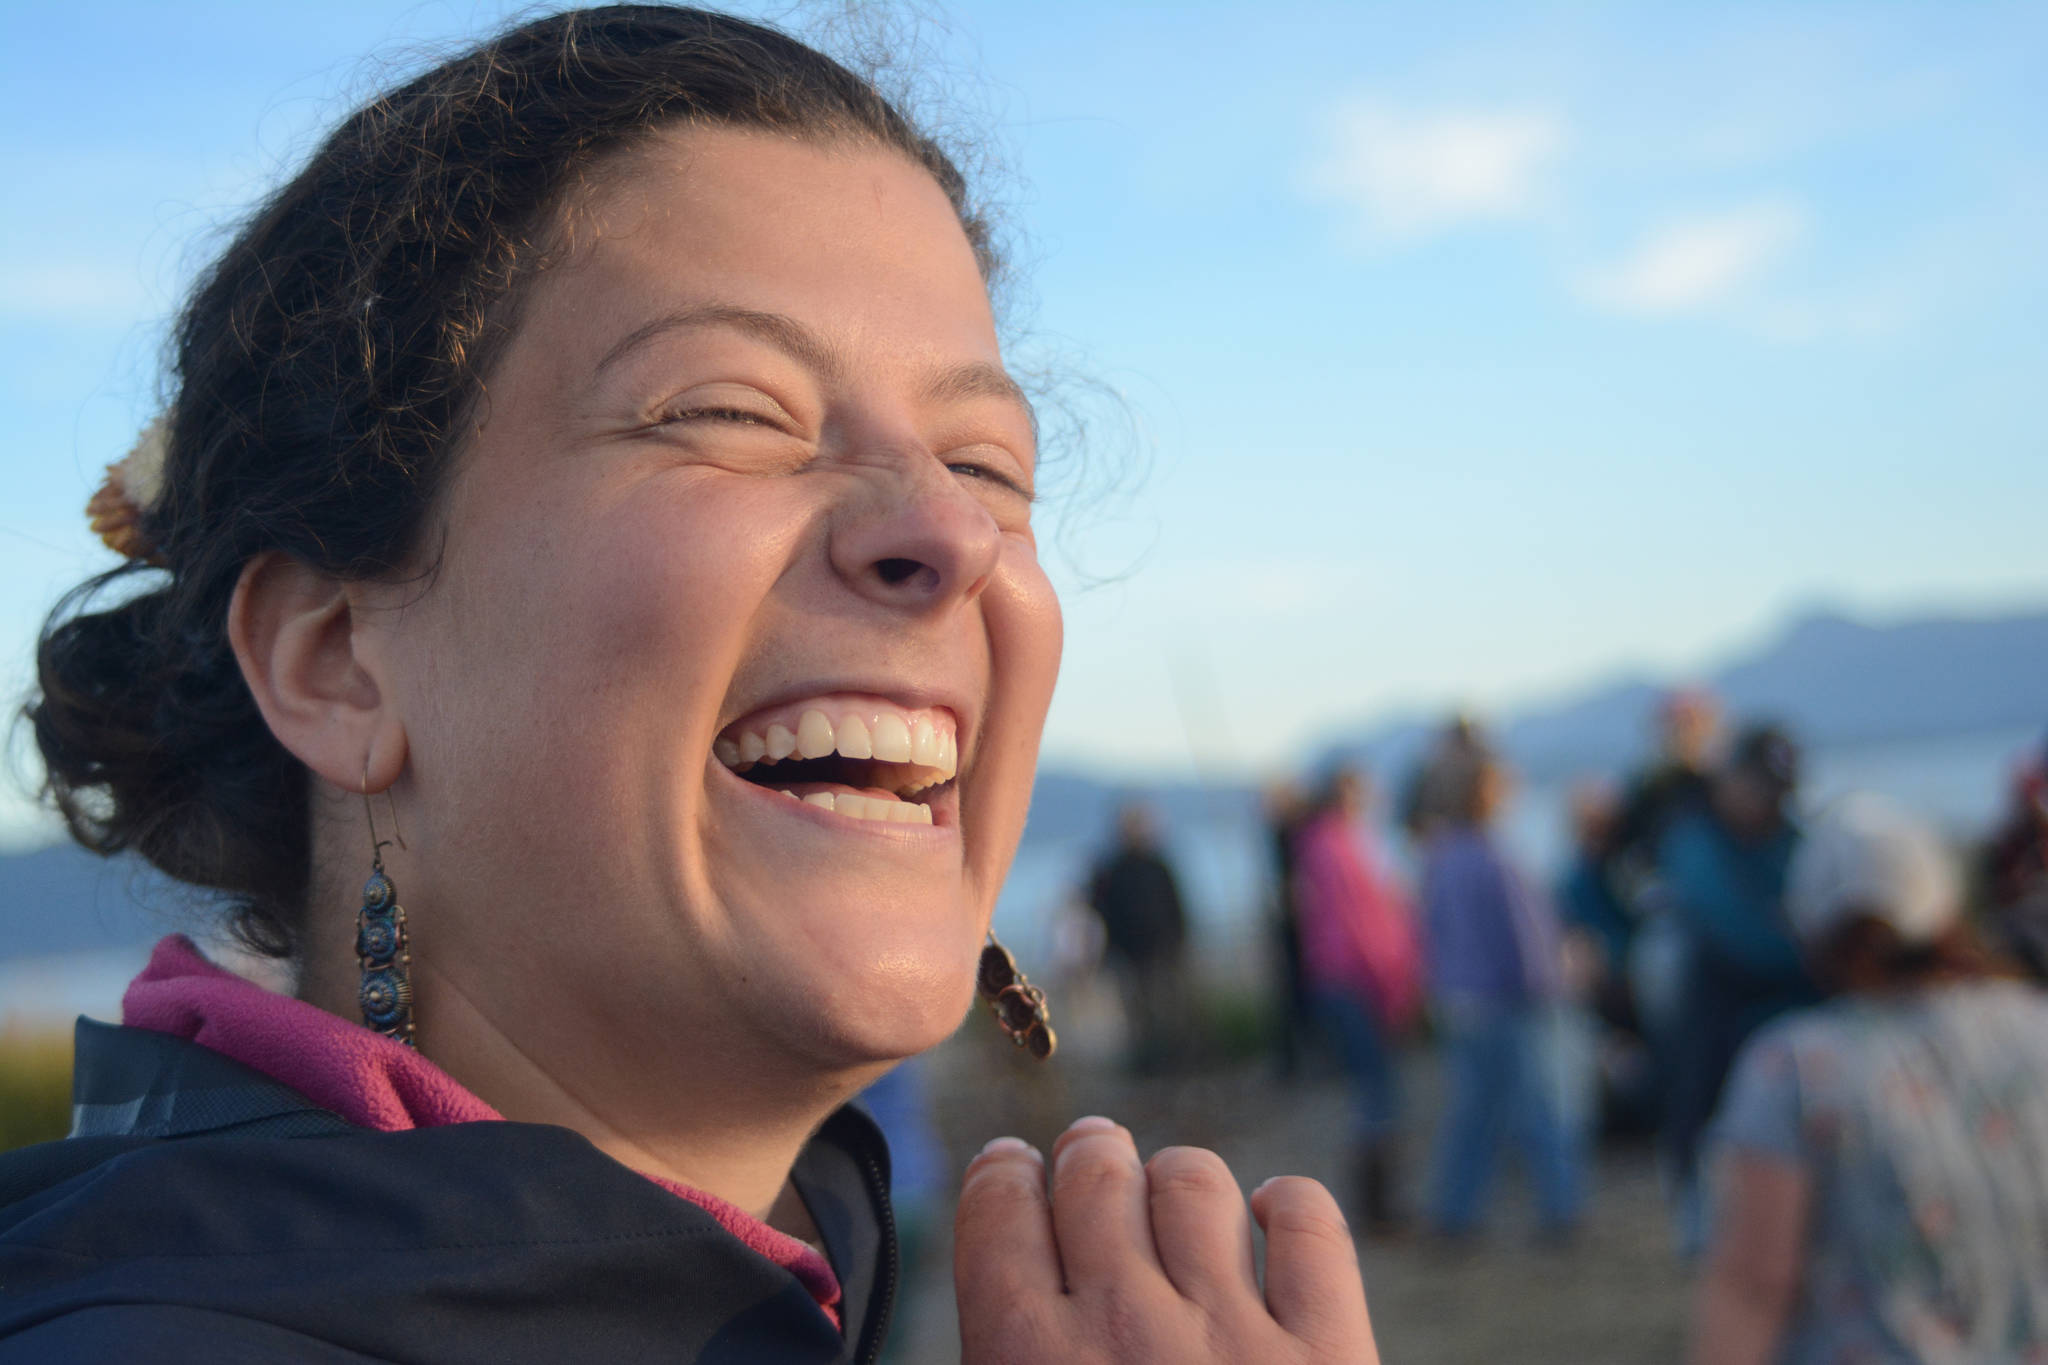 Mira Klein smiles at the start of the 2018 Burning Basket, Dream, on Sept. 9 at Mariner Park, Homer, Alaska. (Photo by Michael Armstrong/Homer News)